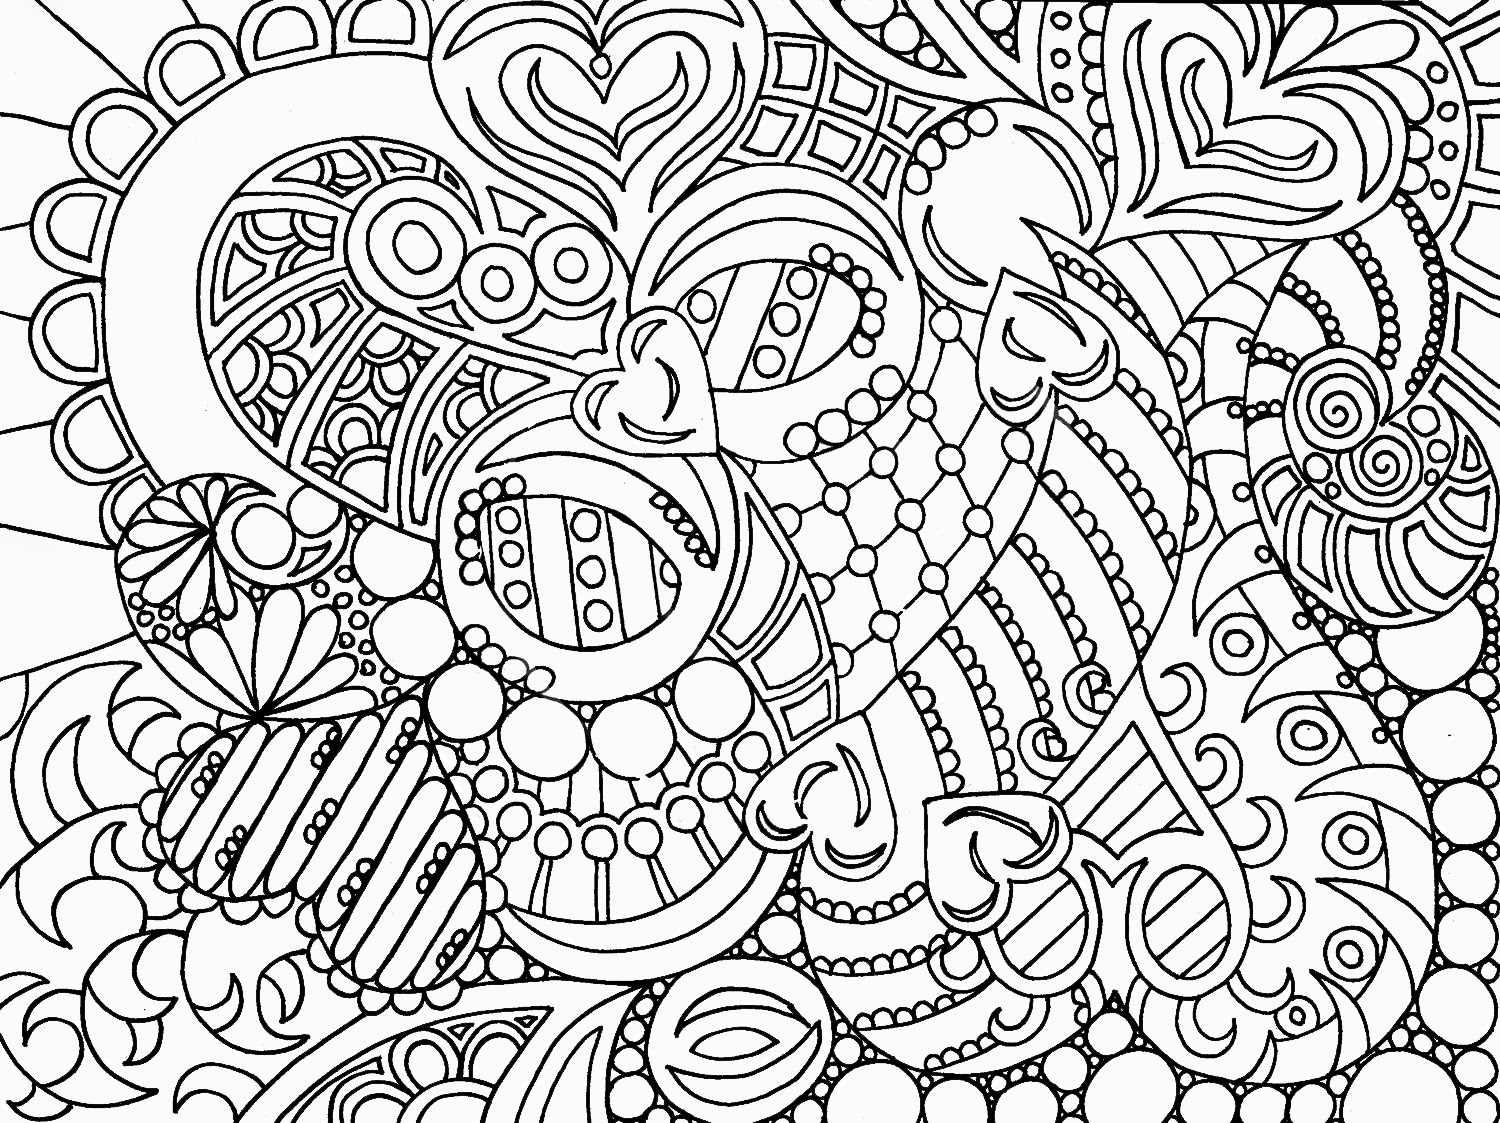 1500x1123 Music Coloring Pages For Adults Erf Coloring